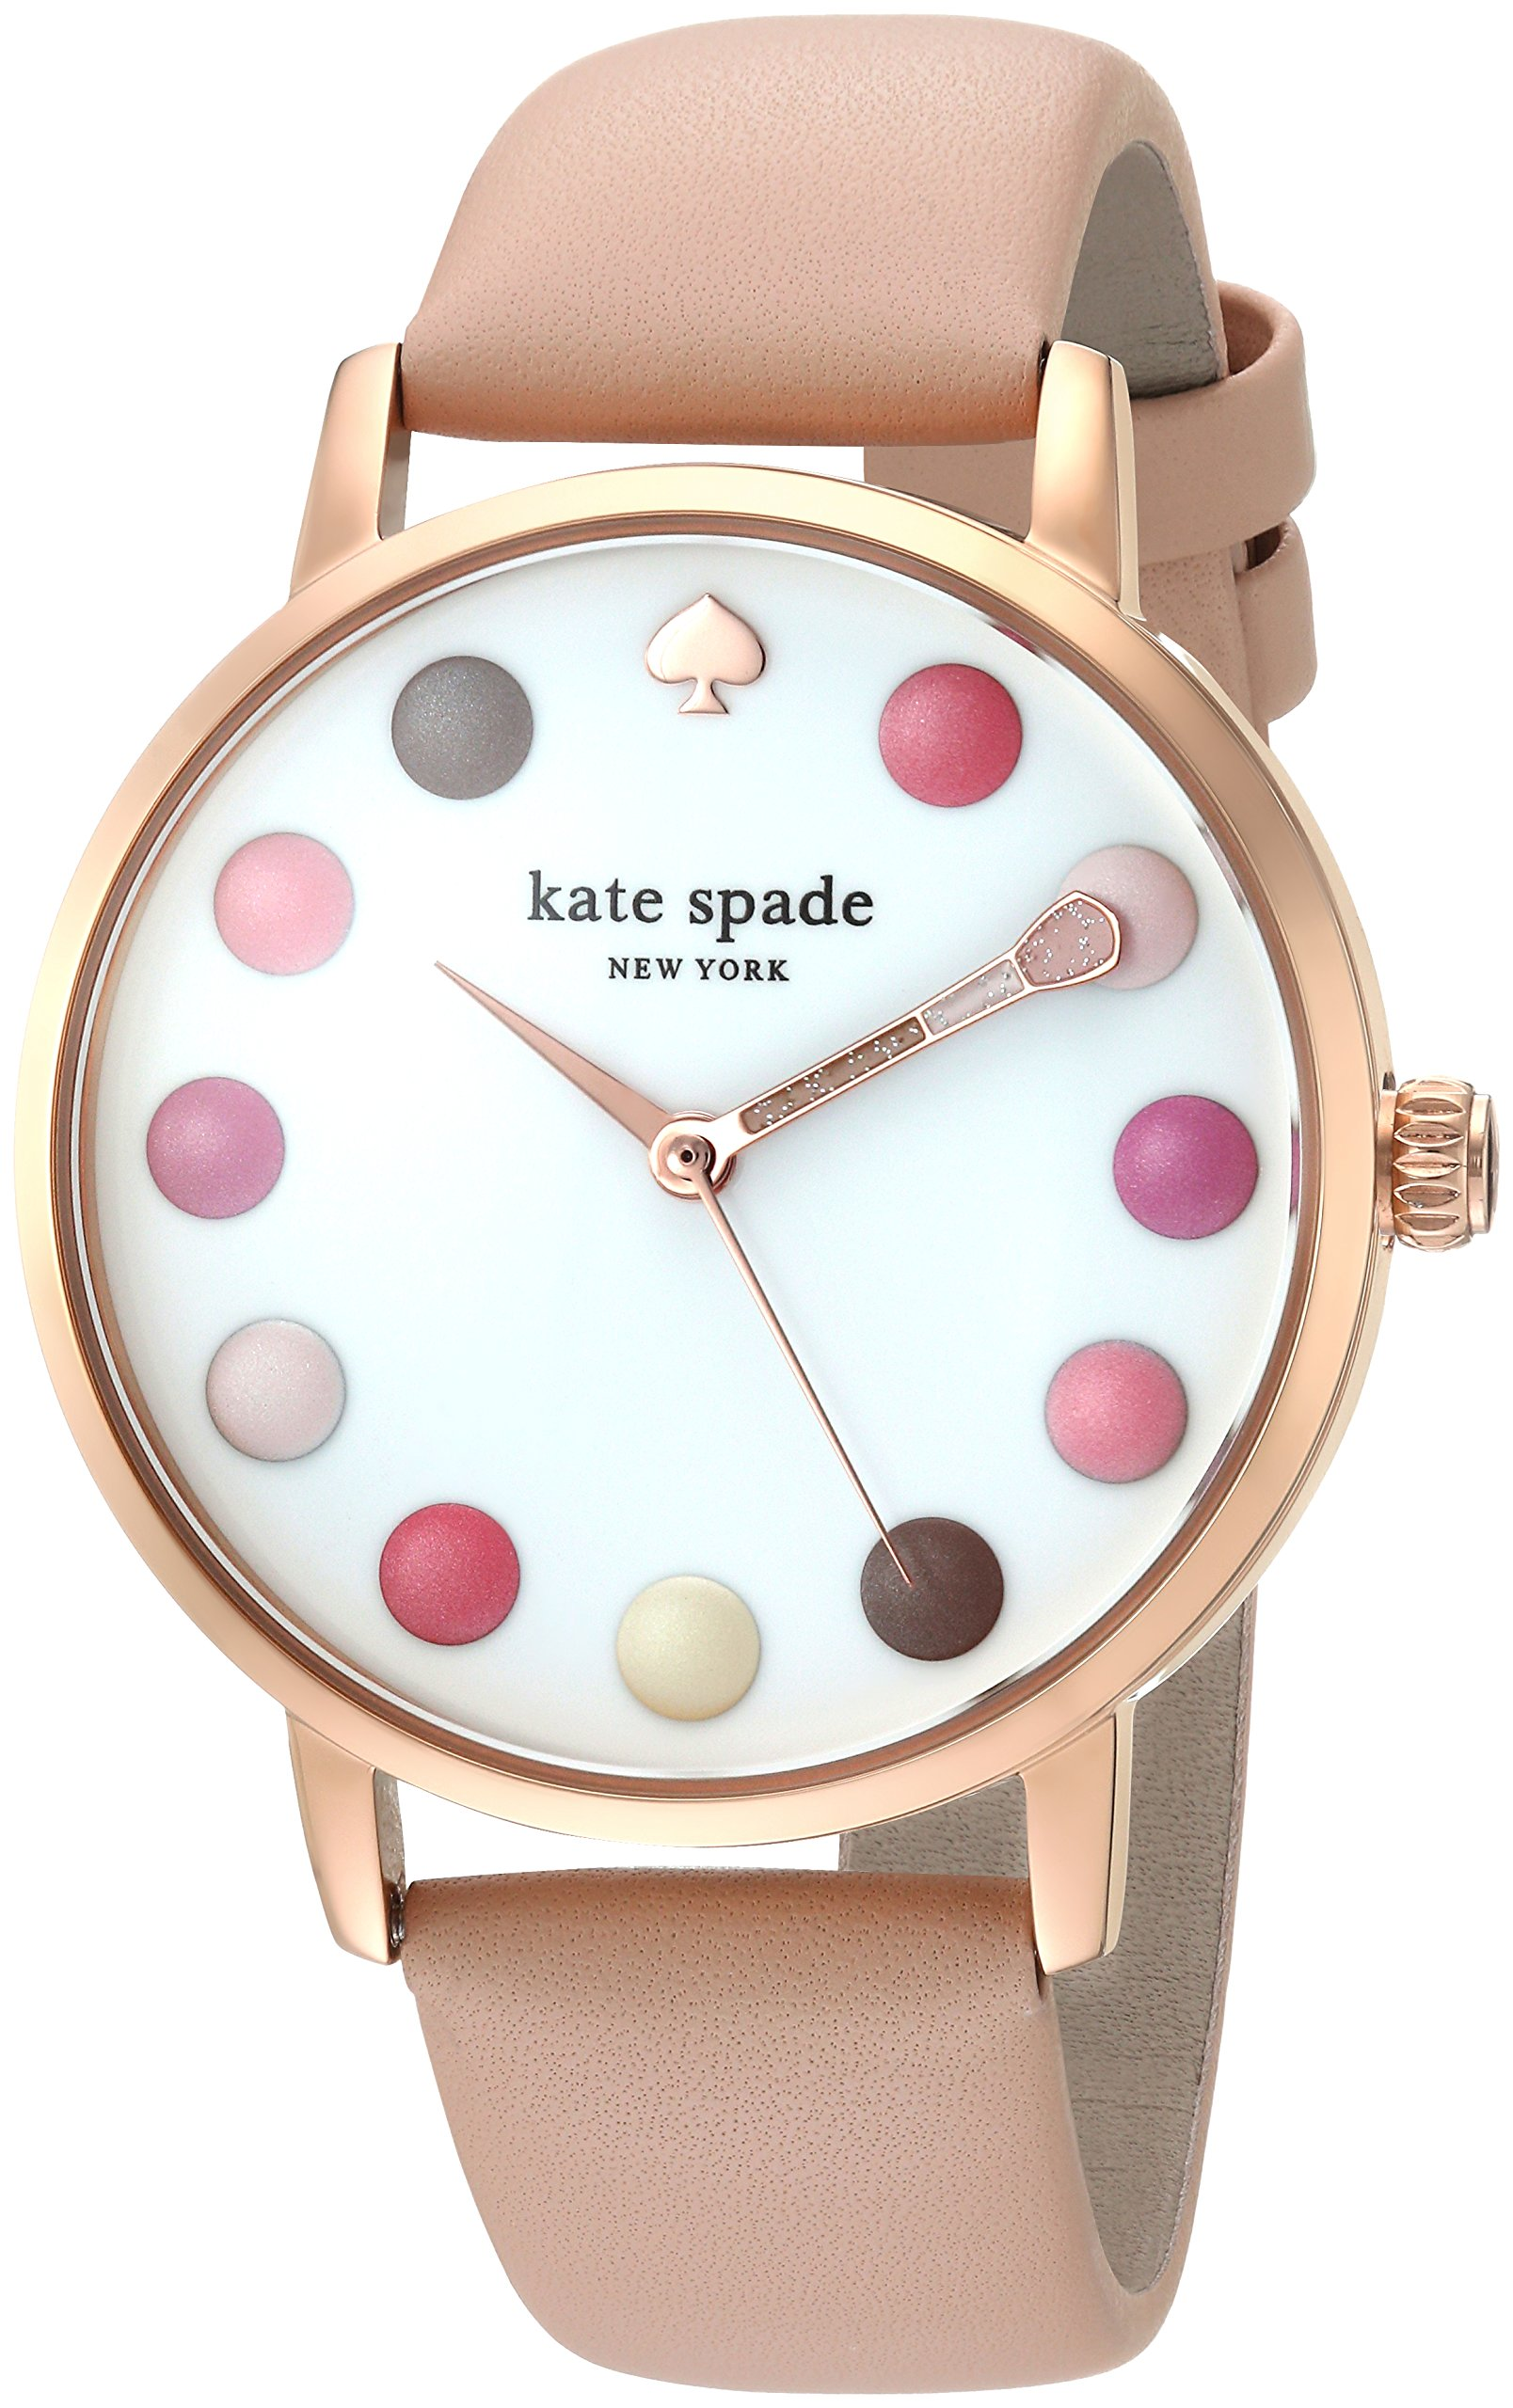 kate spade new york Women's 'Metro' Quartz Stainless Steel and Leather Casual Watch, Color:Brown (Model: KSW1253) by Kate Spade New York